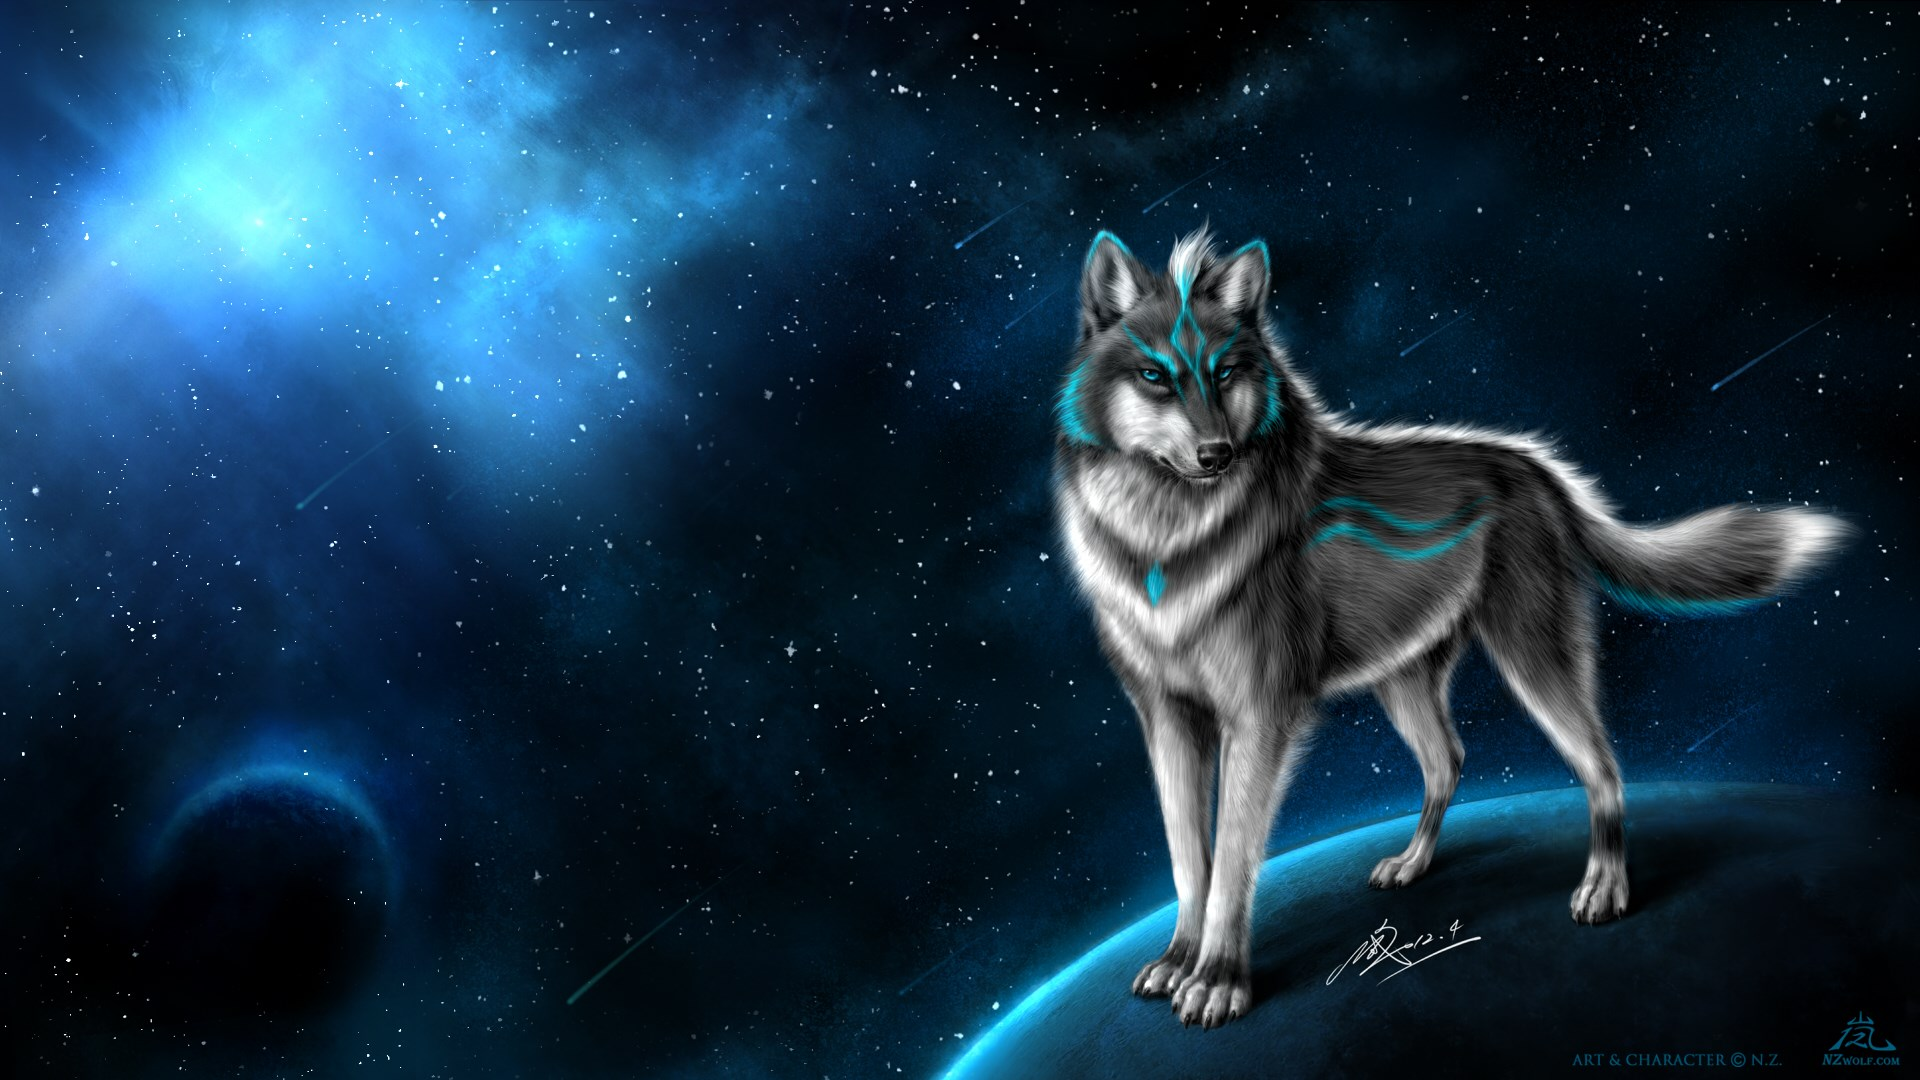 1920x1080-Free-Awesome-wolf-wallpaper-wpc580674